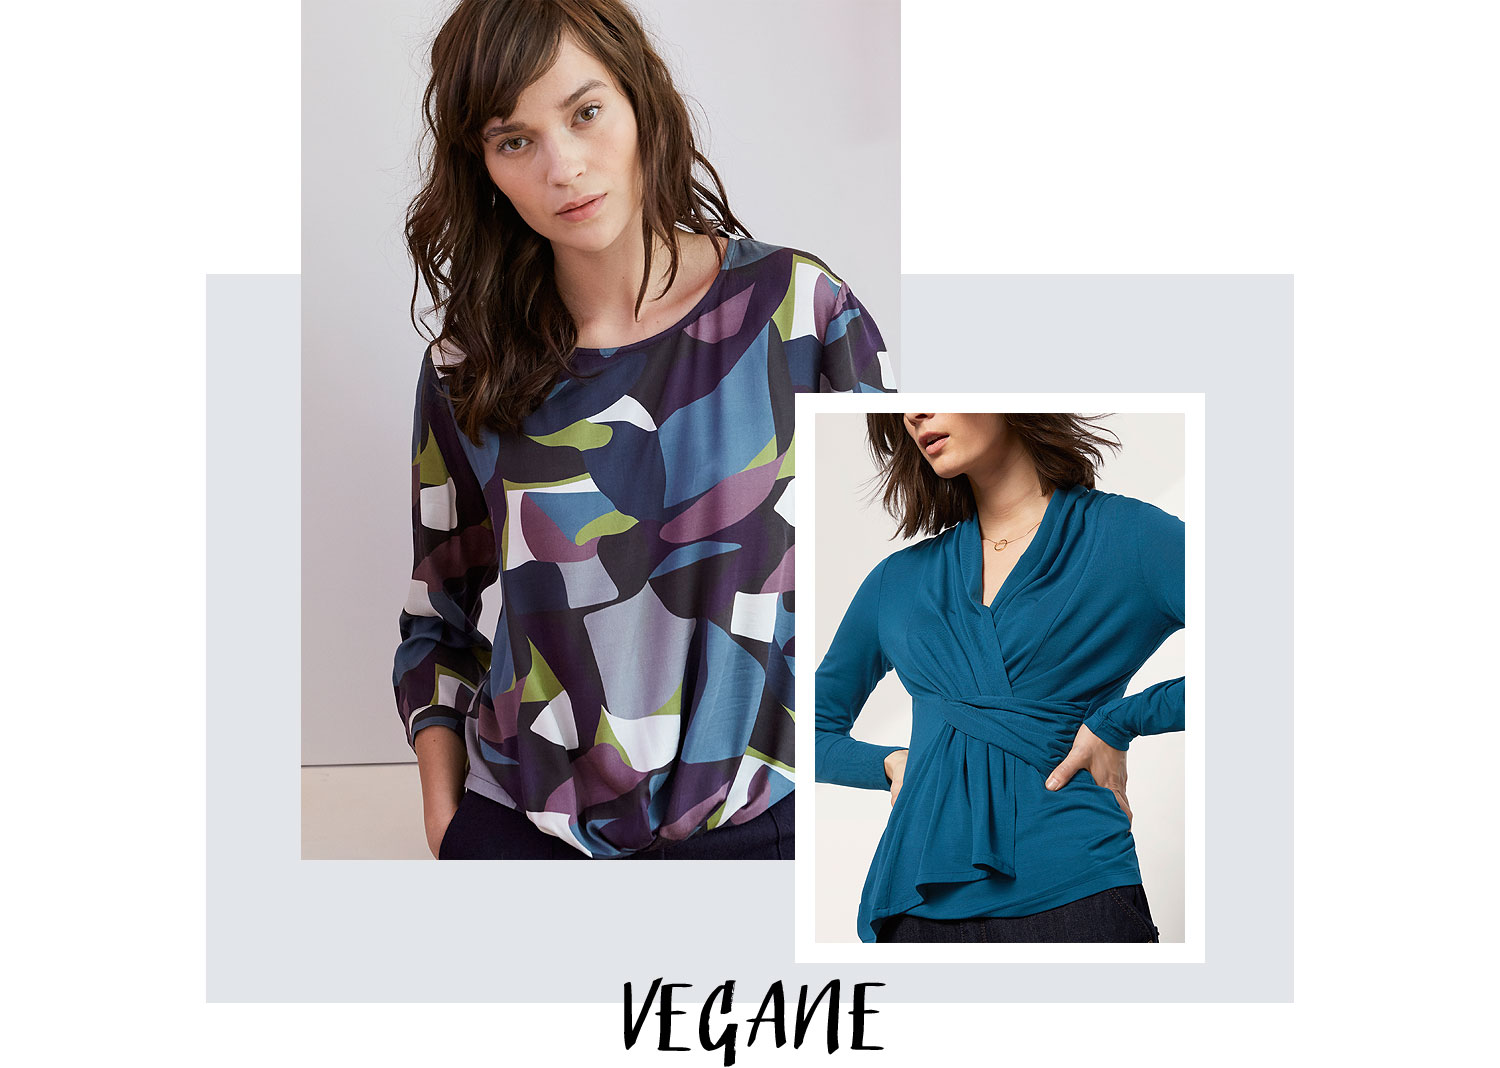 Vegane-Damen Mode